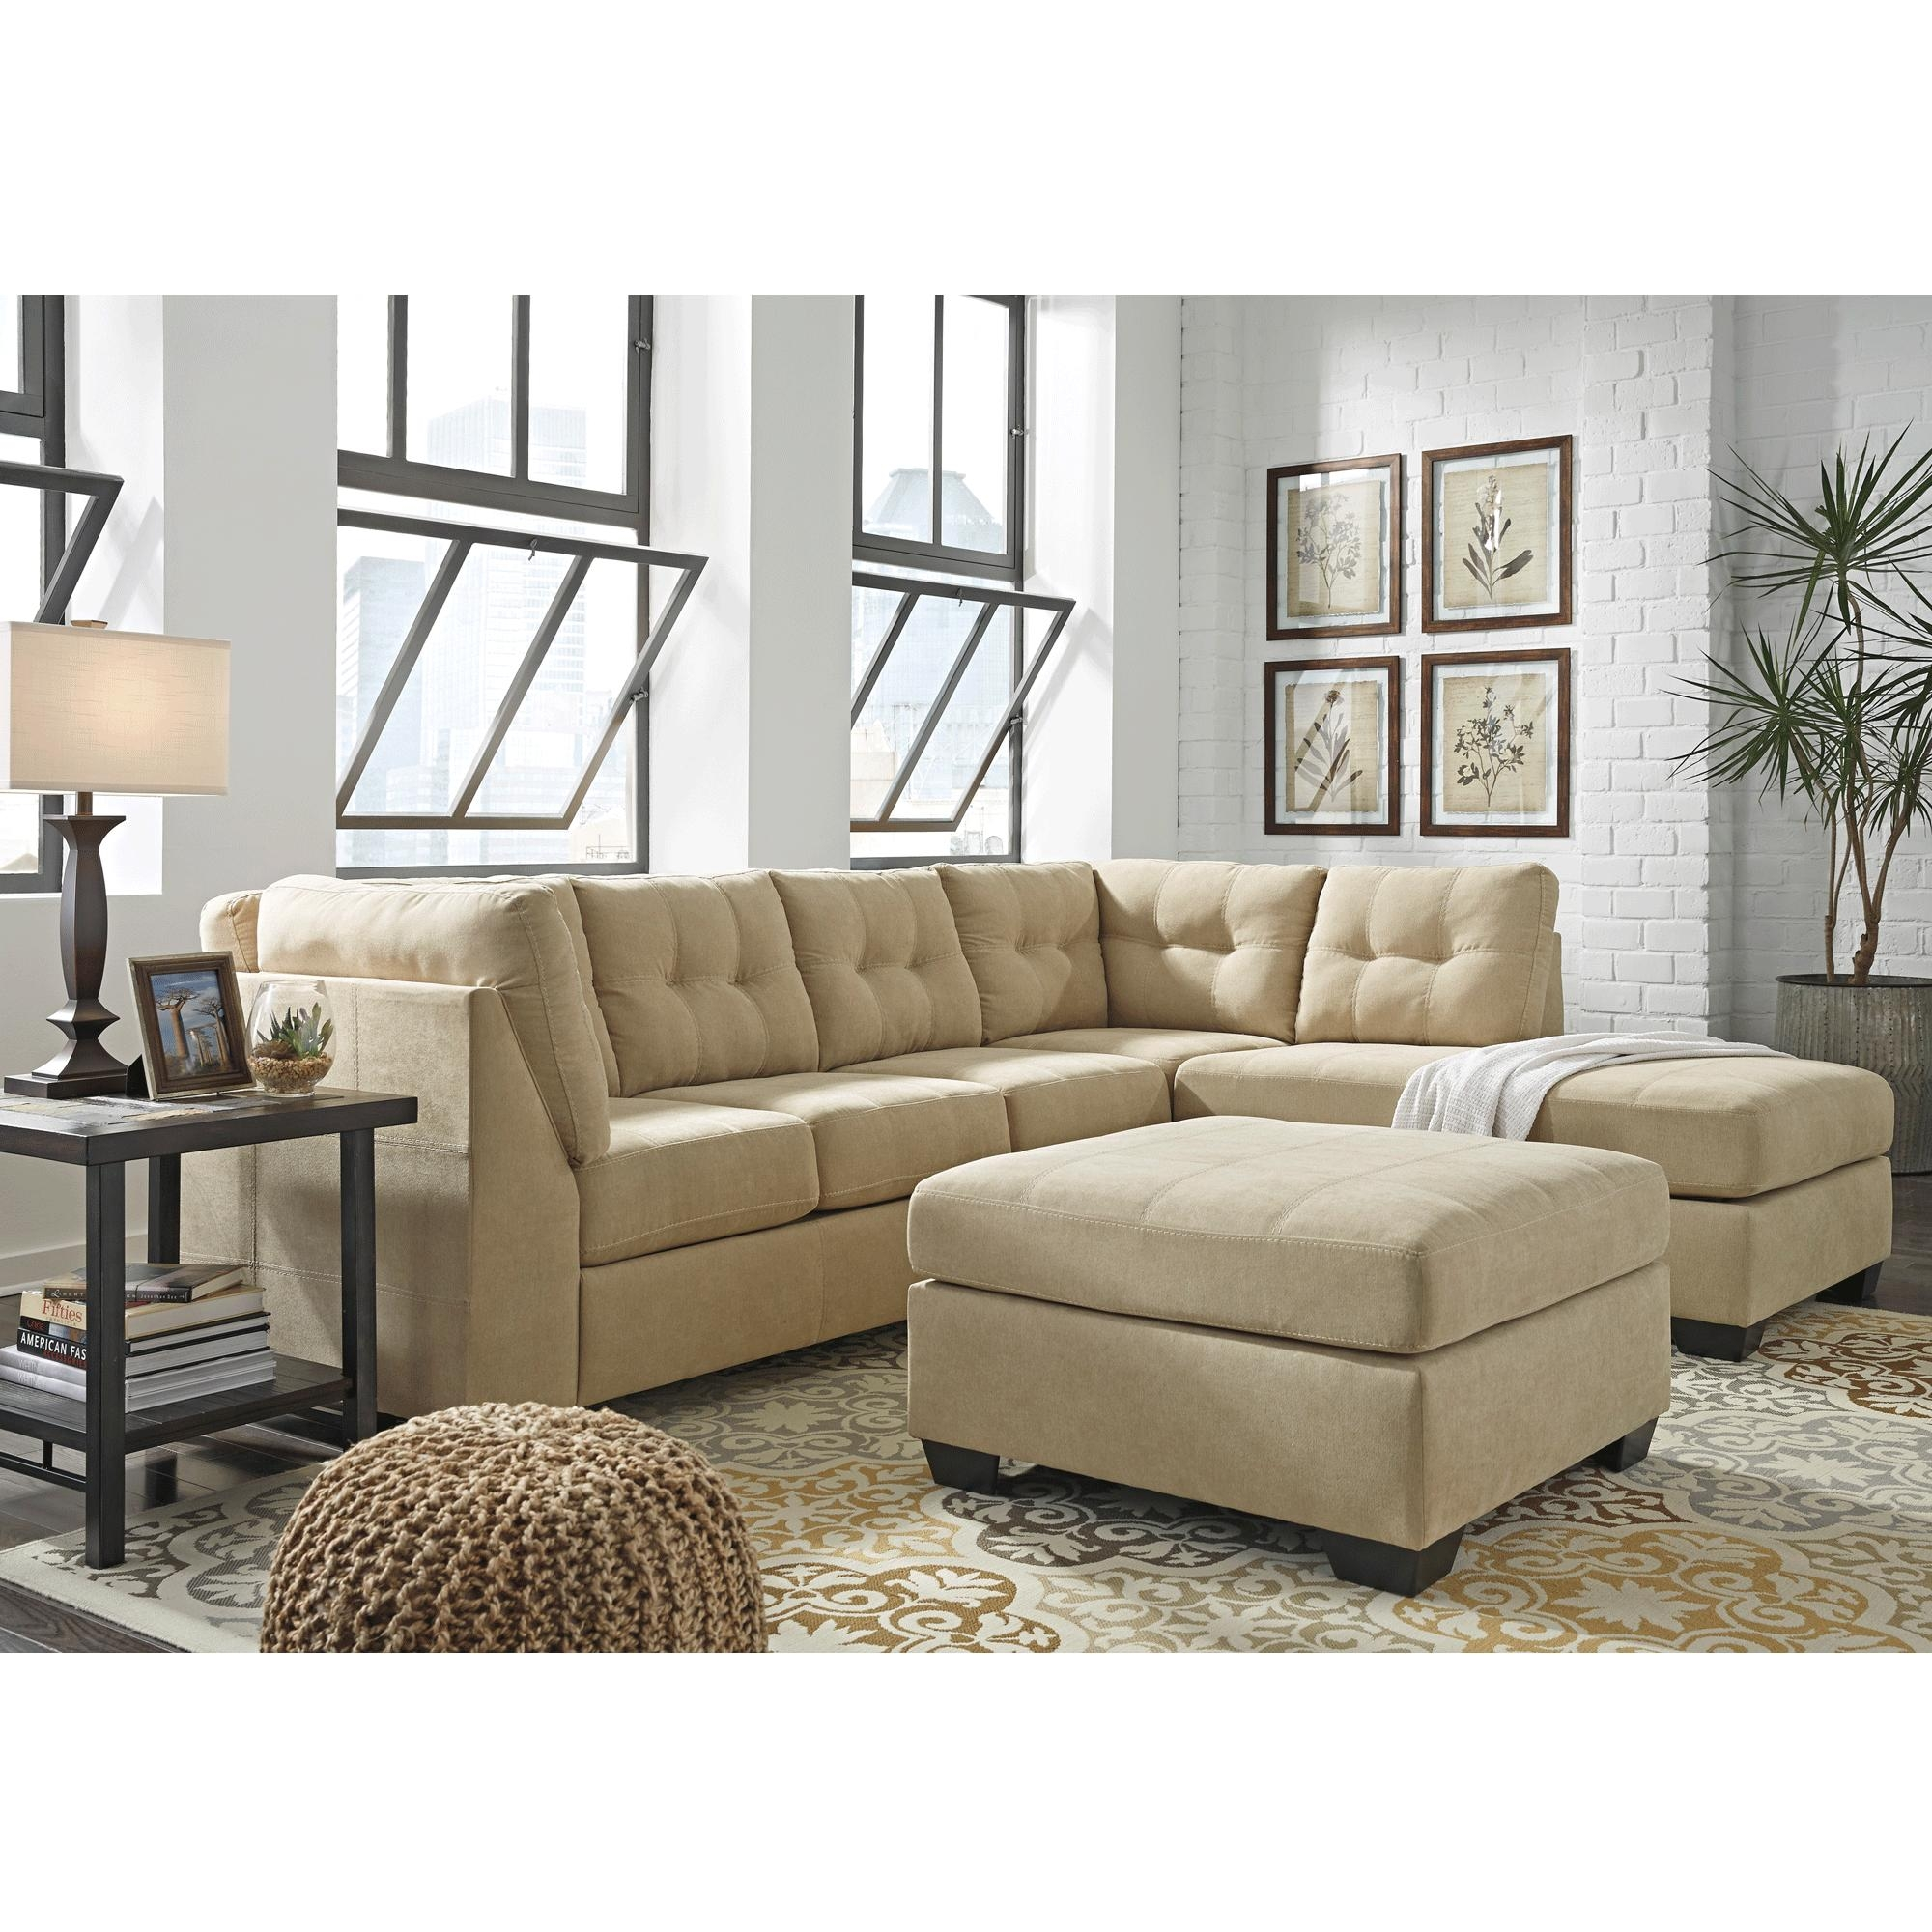 sofa usado olx sp craigslist sleeper nyc small down sectional baci living room